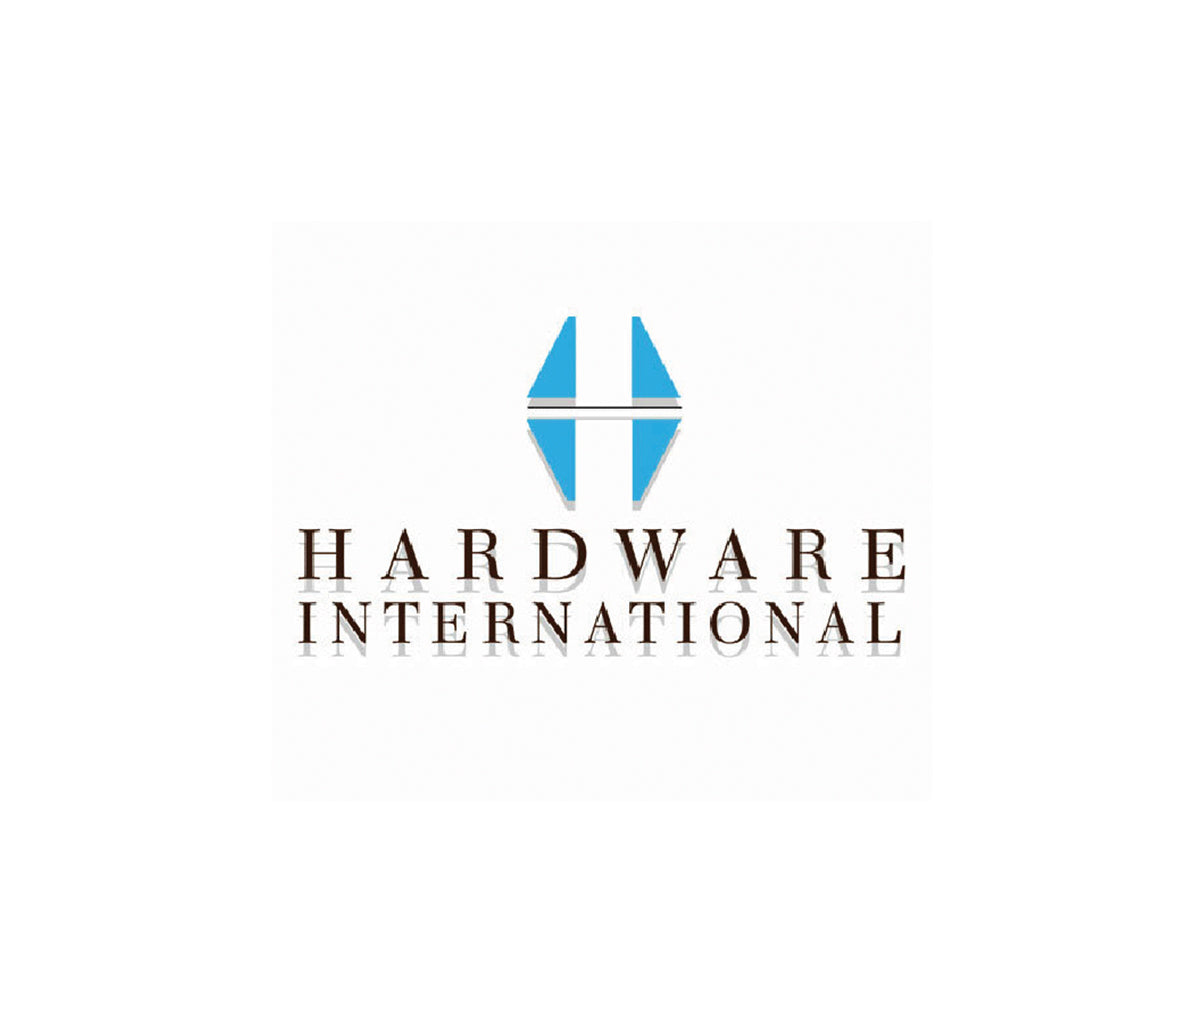 Hardware Interational